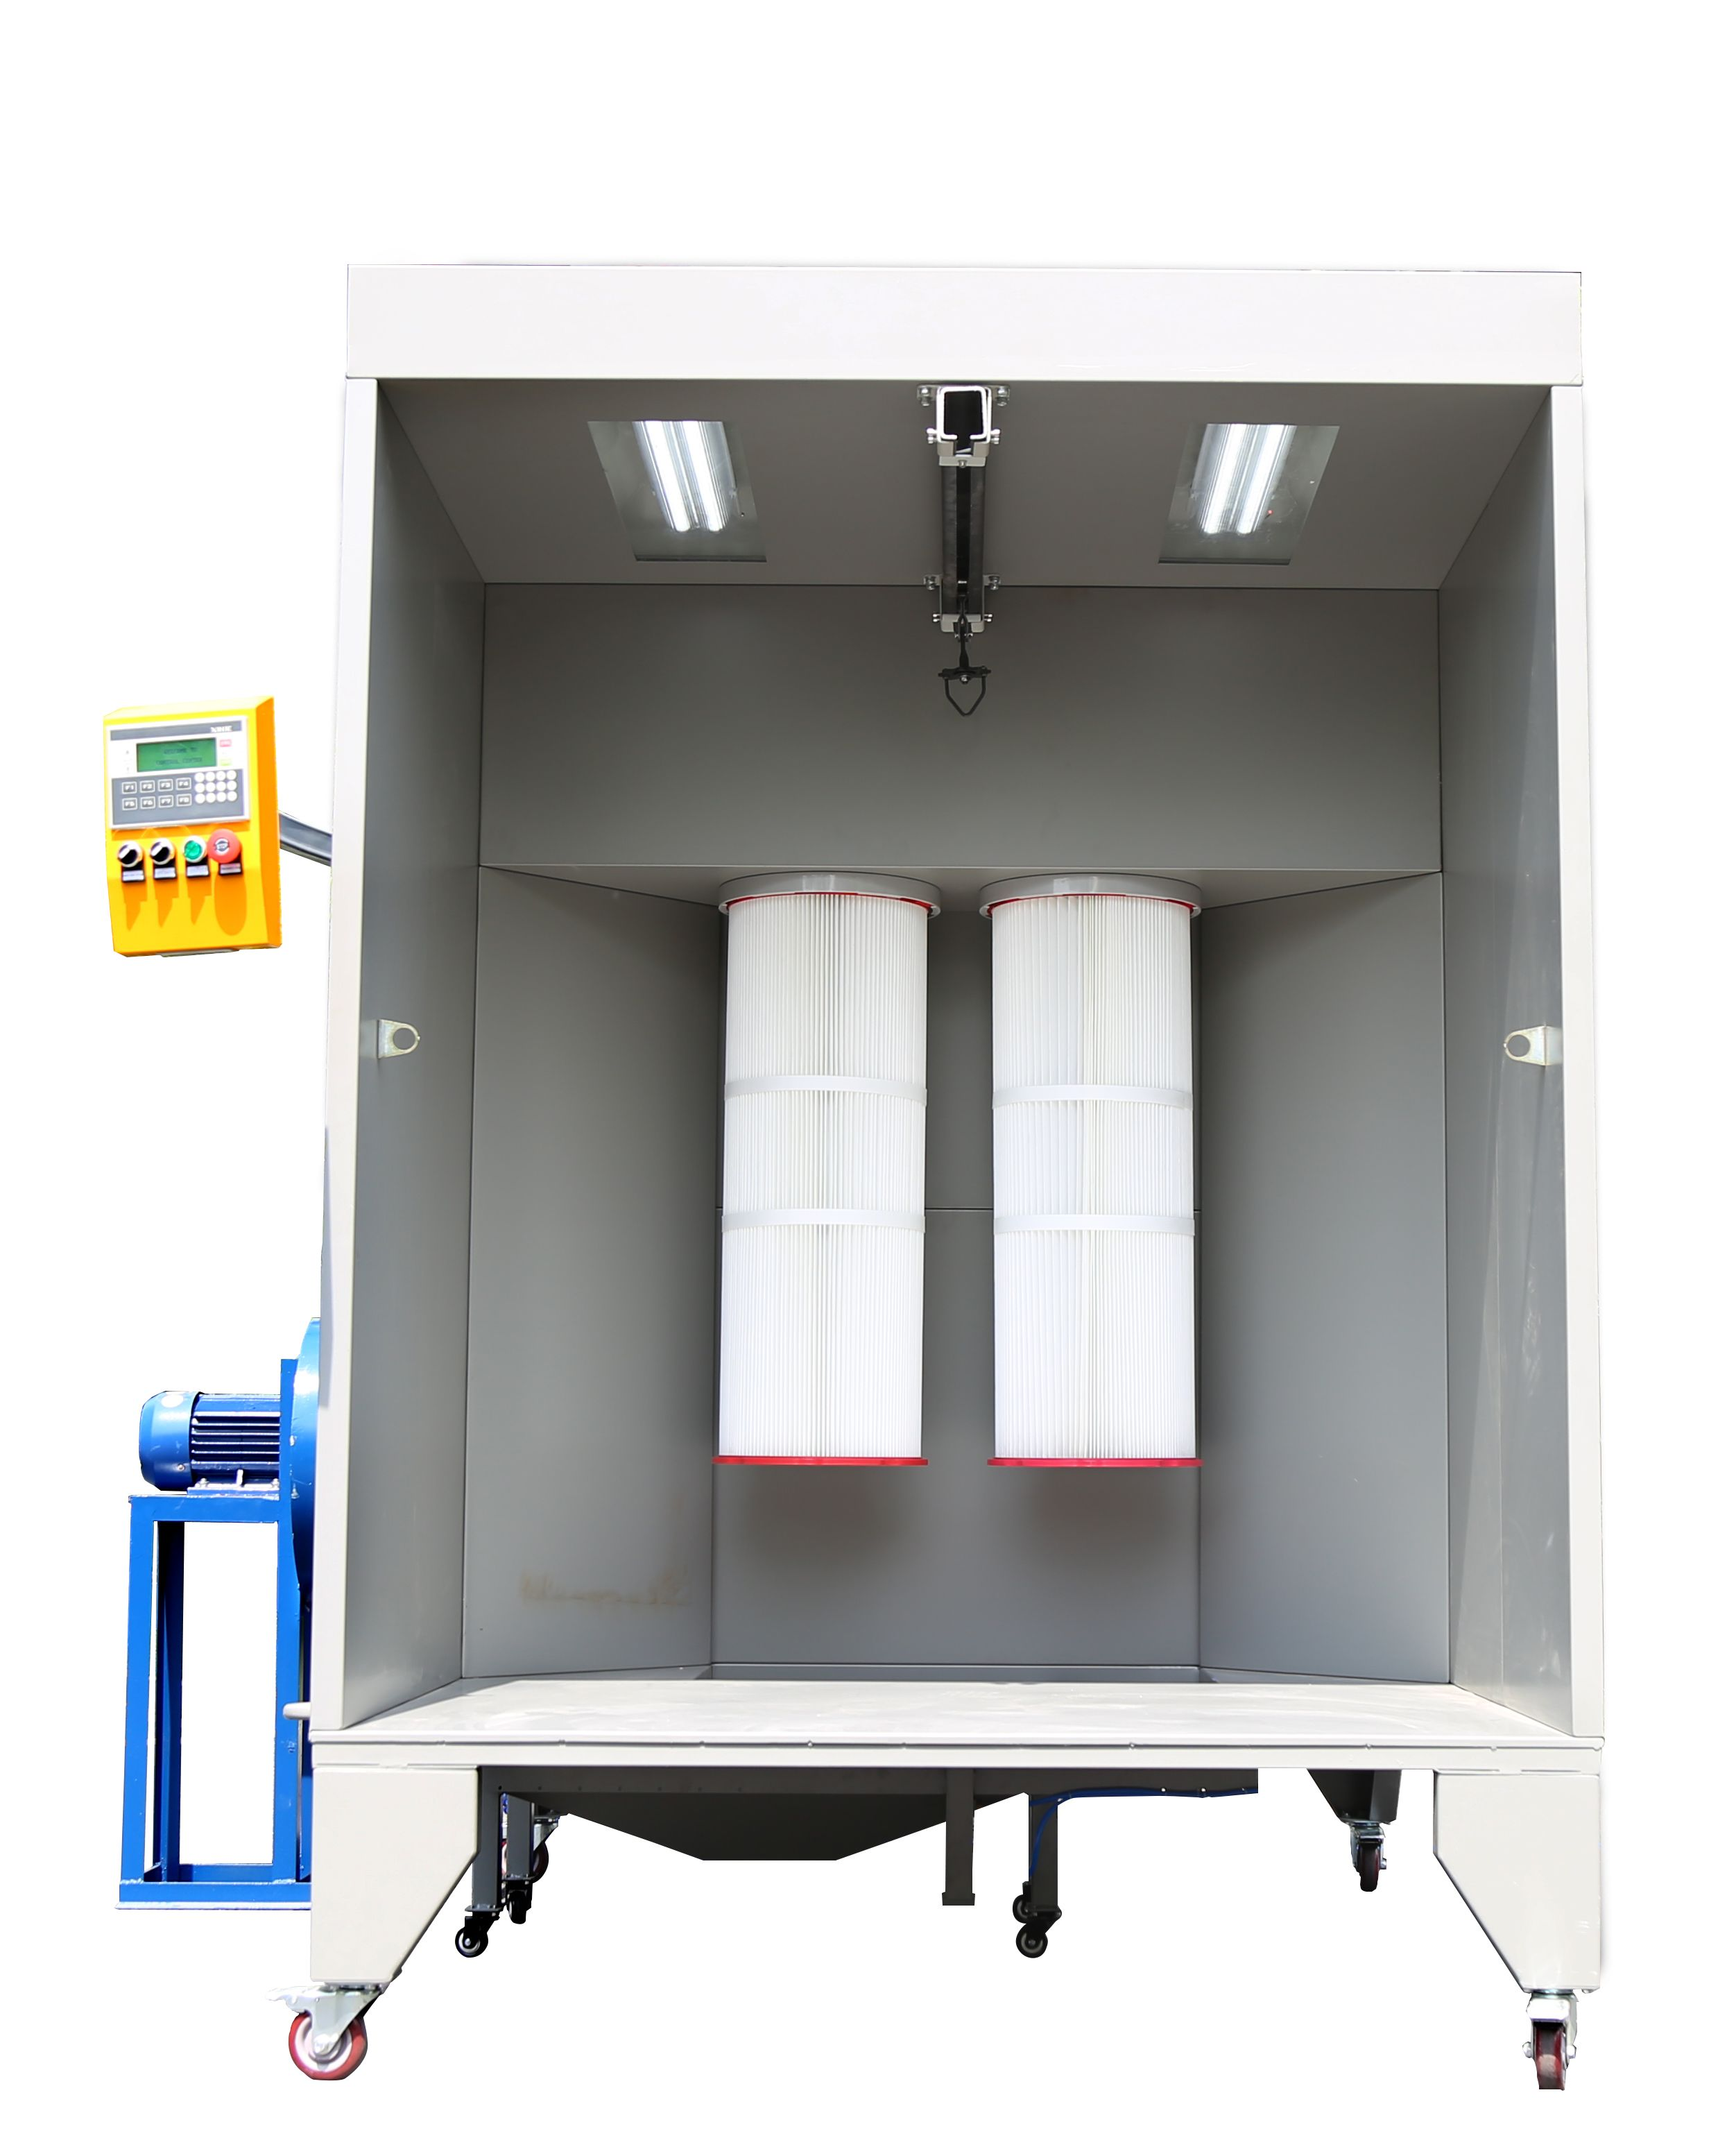 Manual Powder Coating Booth With 2pcs Filters Powdercoating Powdercoatinggun Powdercoatingequipment P Spray Booth Powder Coating Equipment Powder Coating